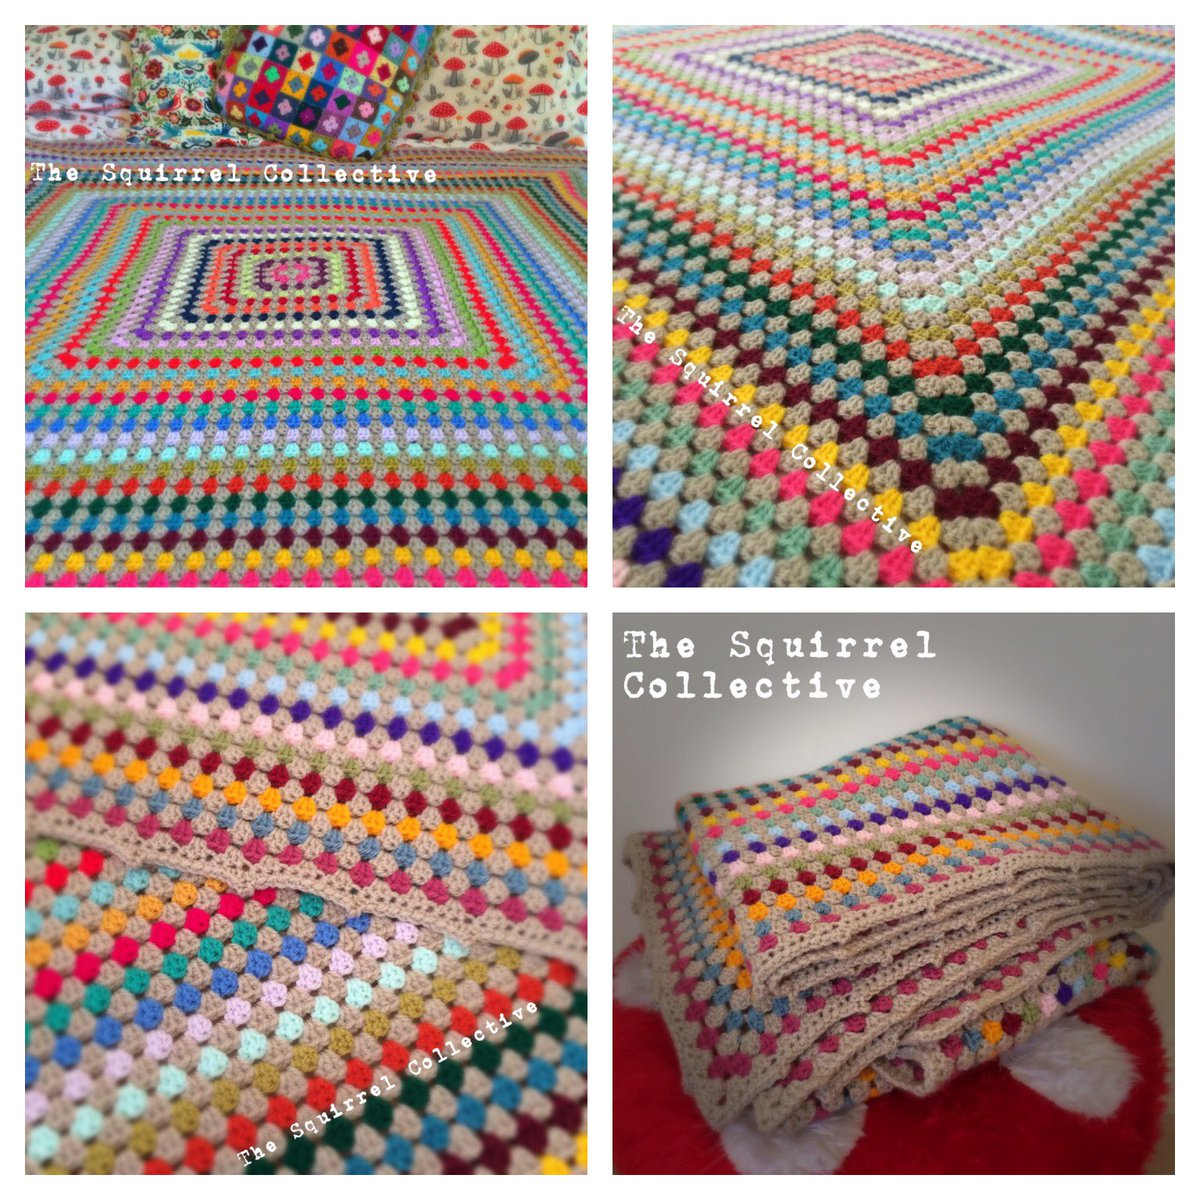 The giant #rainbow Joseph #blanket:  https://www. facebook.com/TheSquirrelCol lective/posts/1764241113905823:0 &nbsp; …  #HandmadeHour #crochet #vintagestyle #retrostyle #handmadehome #WAHM #handmade<br>http://pic.twitter.com/Jyo9pL6v8y